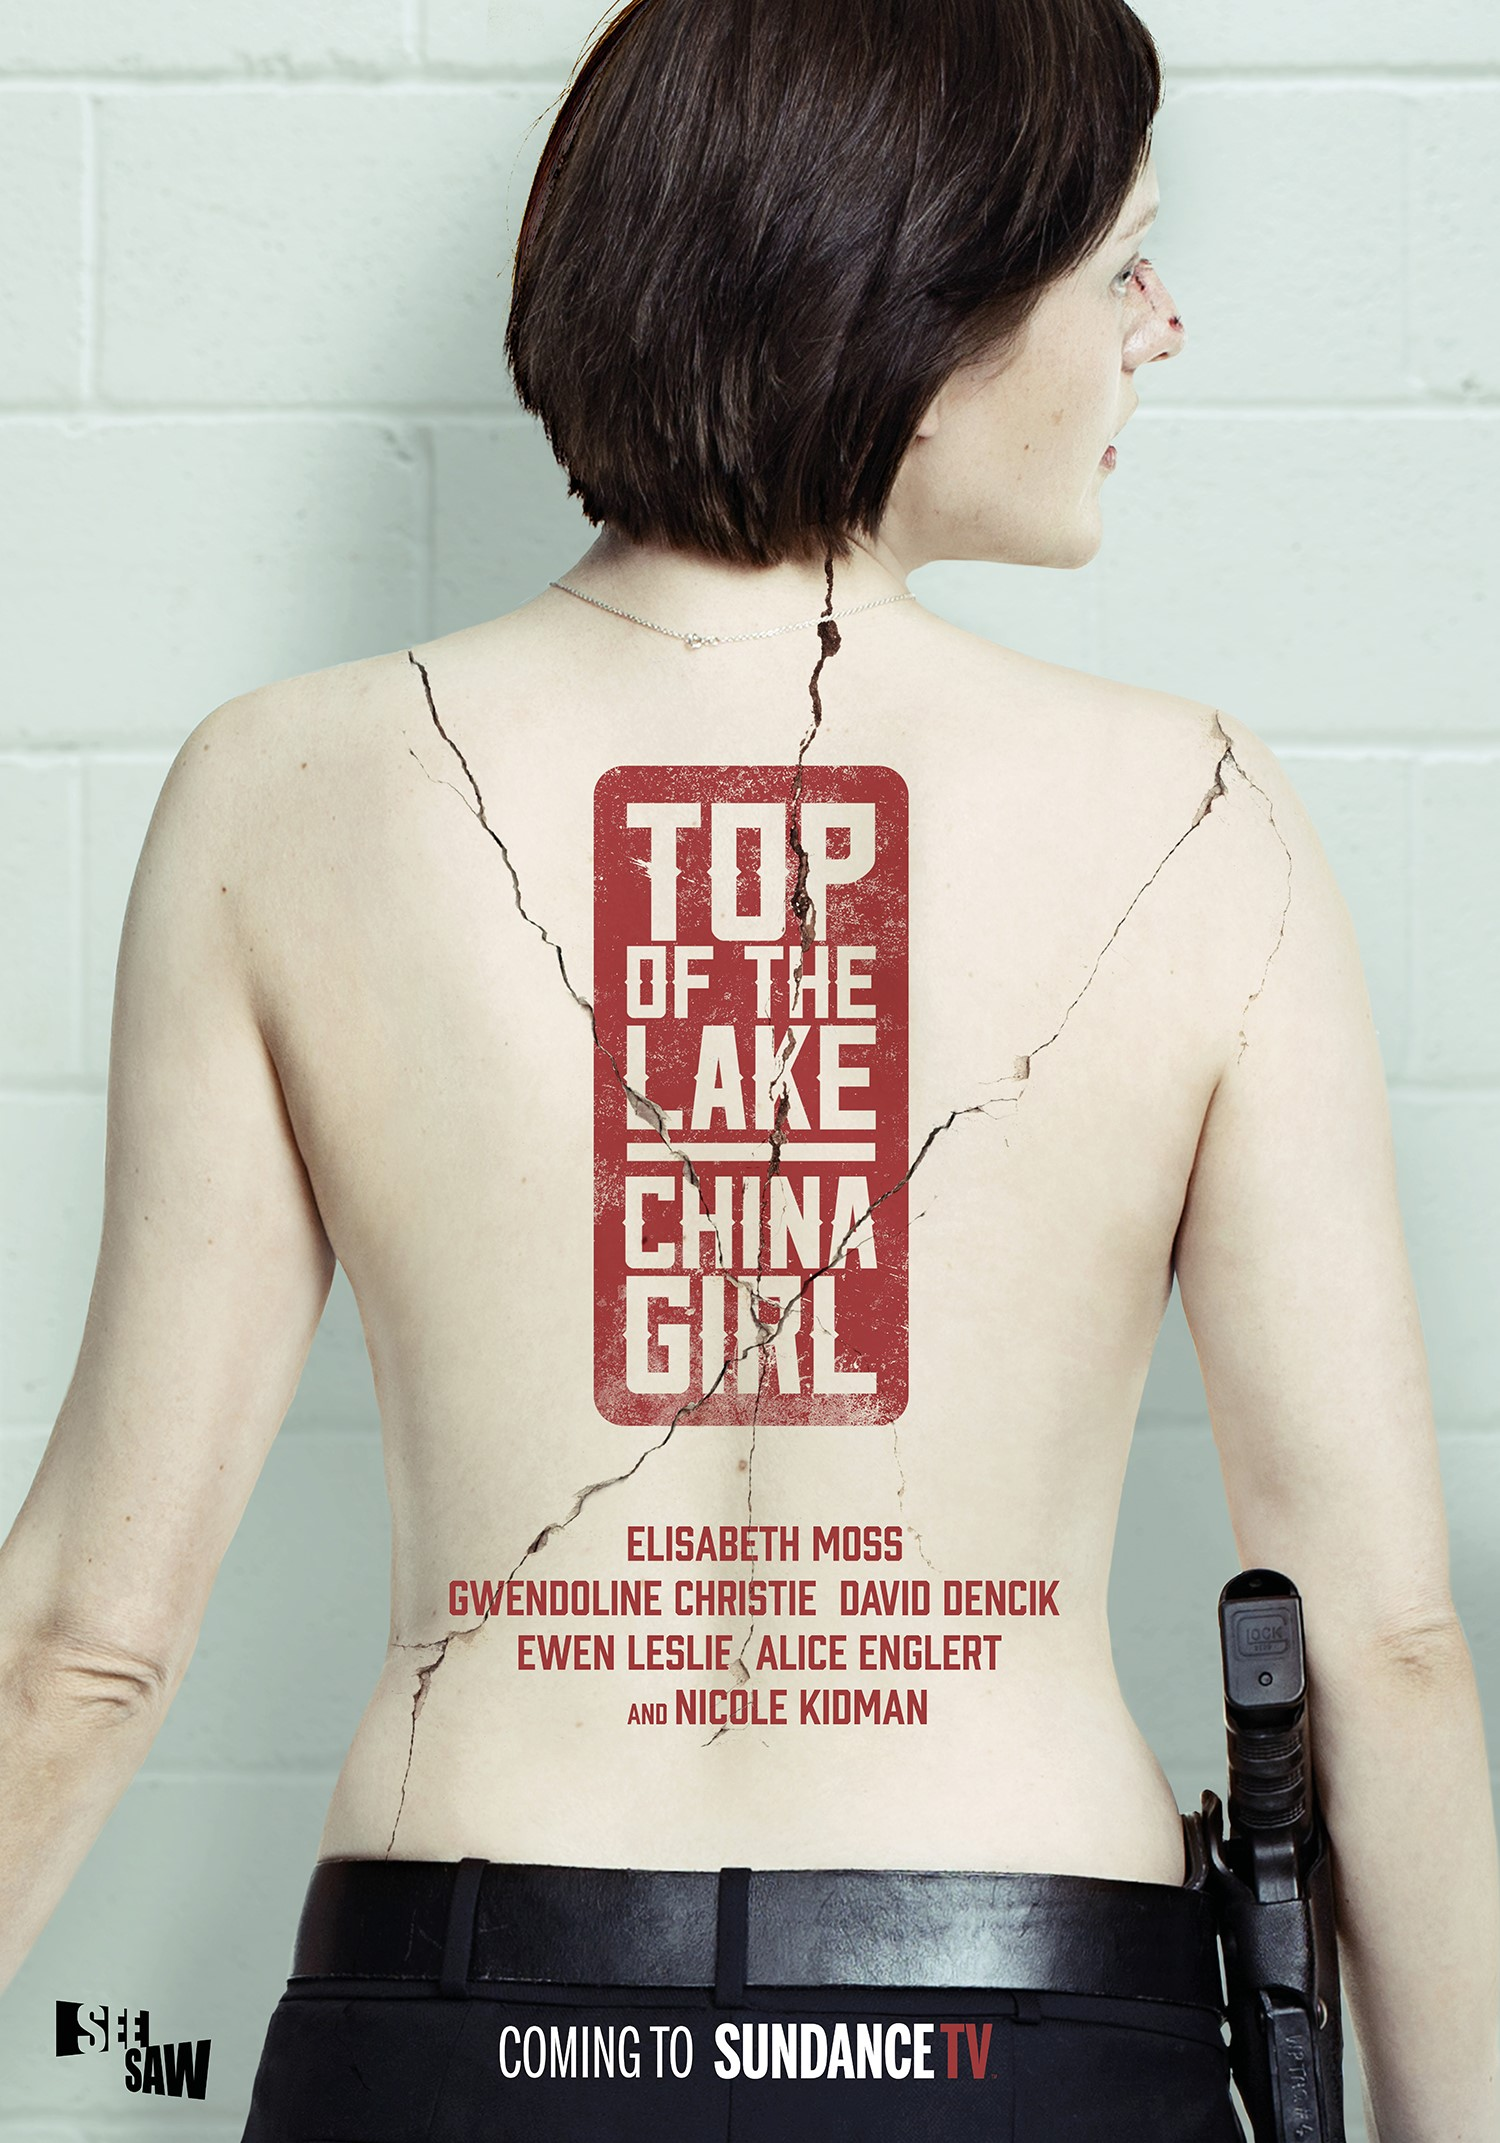 Jane Campion - Top of the lake : China girl